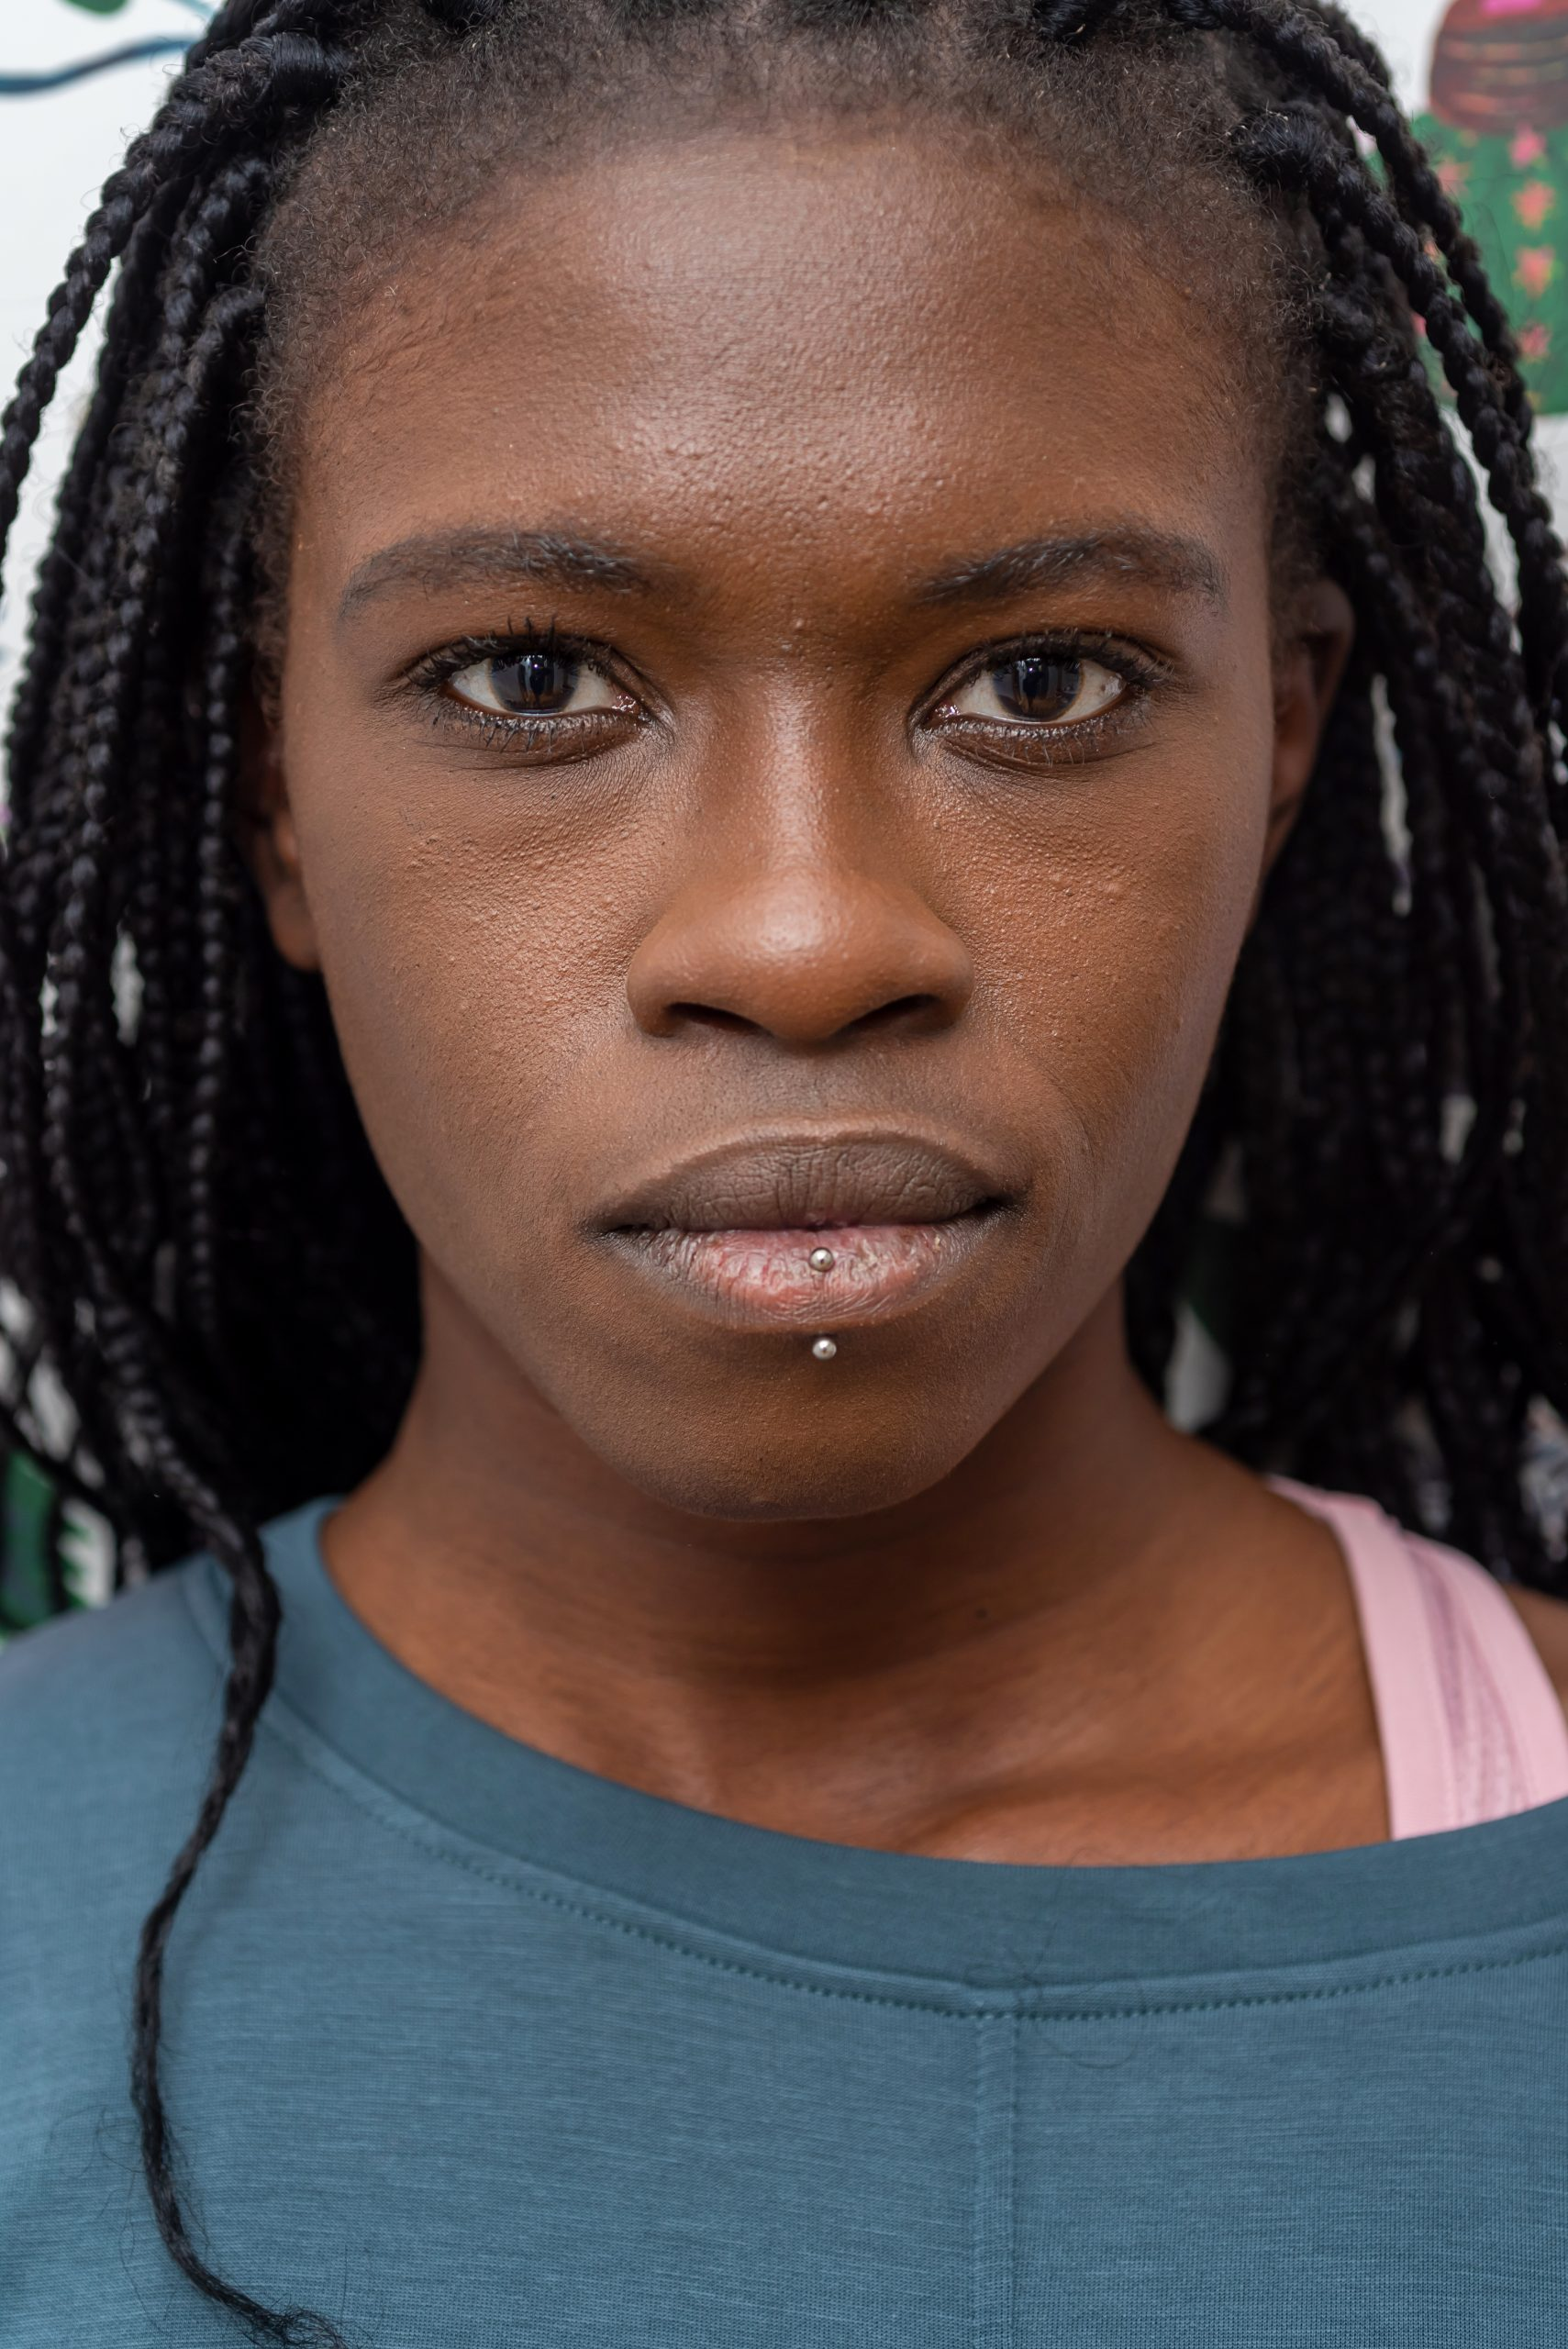 Headshot of determined African American female with black braids and piercing looking at camera